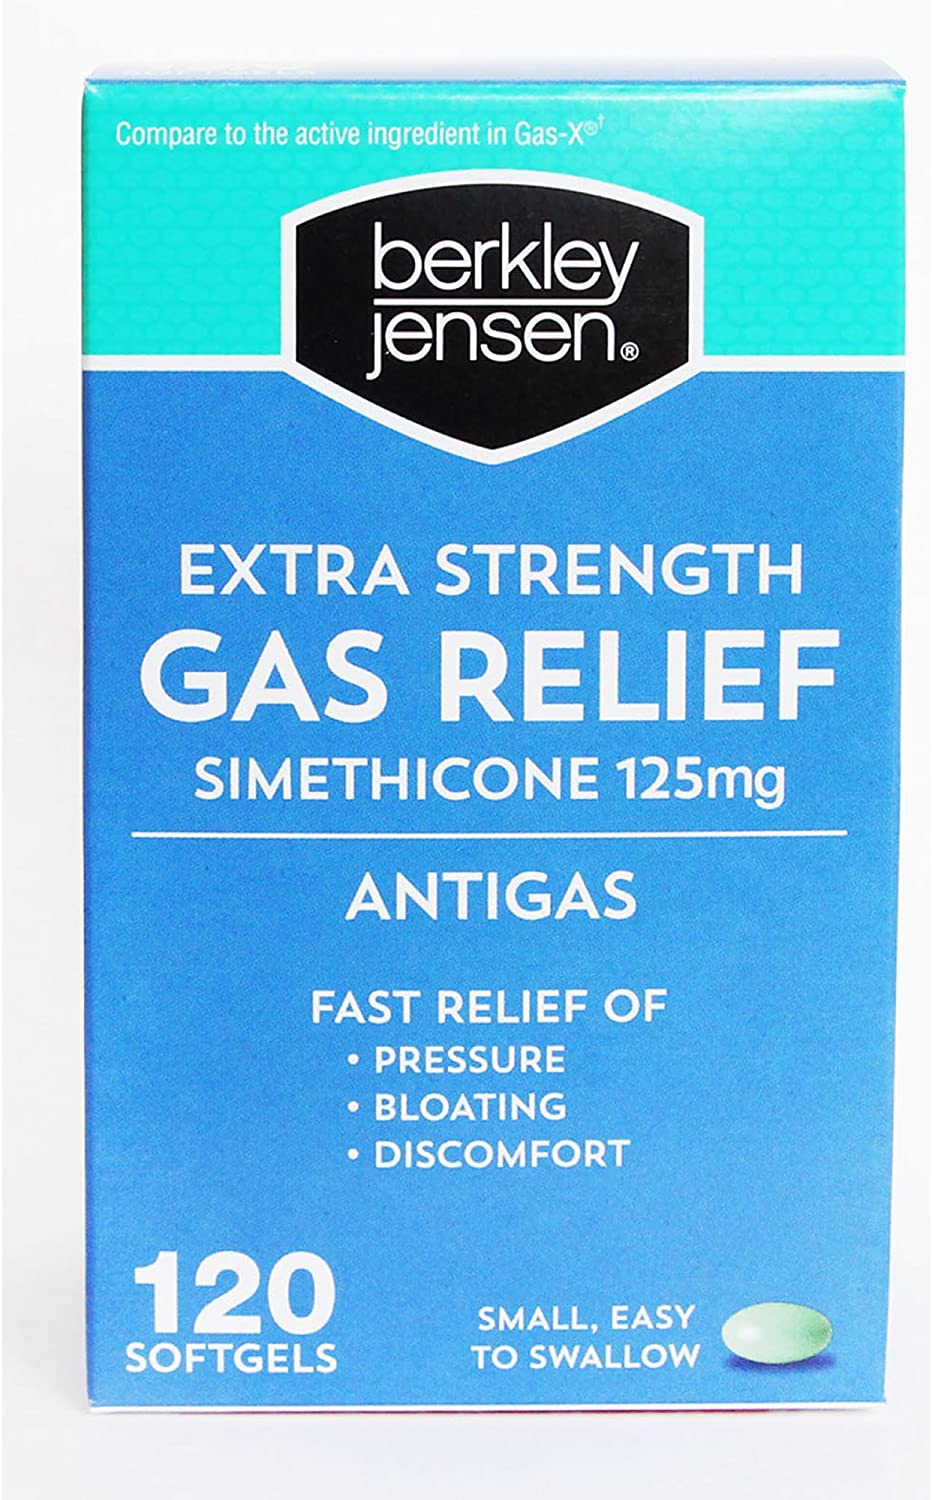 Berkley Jensen Extra Strength Gas Relief Softgels, 120 ct. (pack of 2)